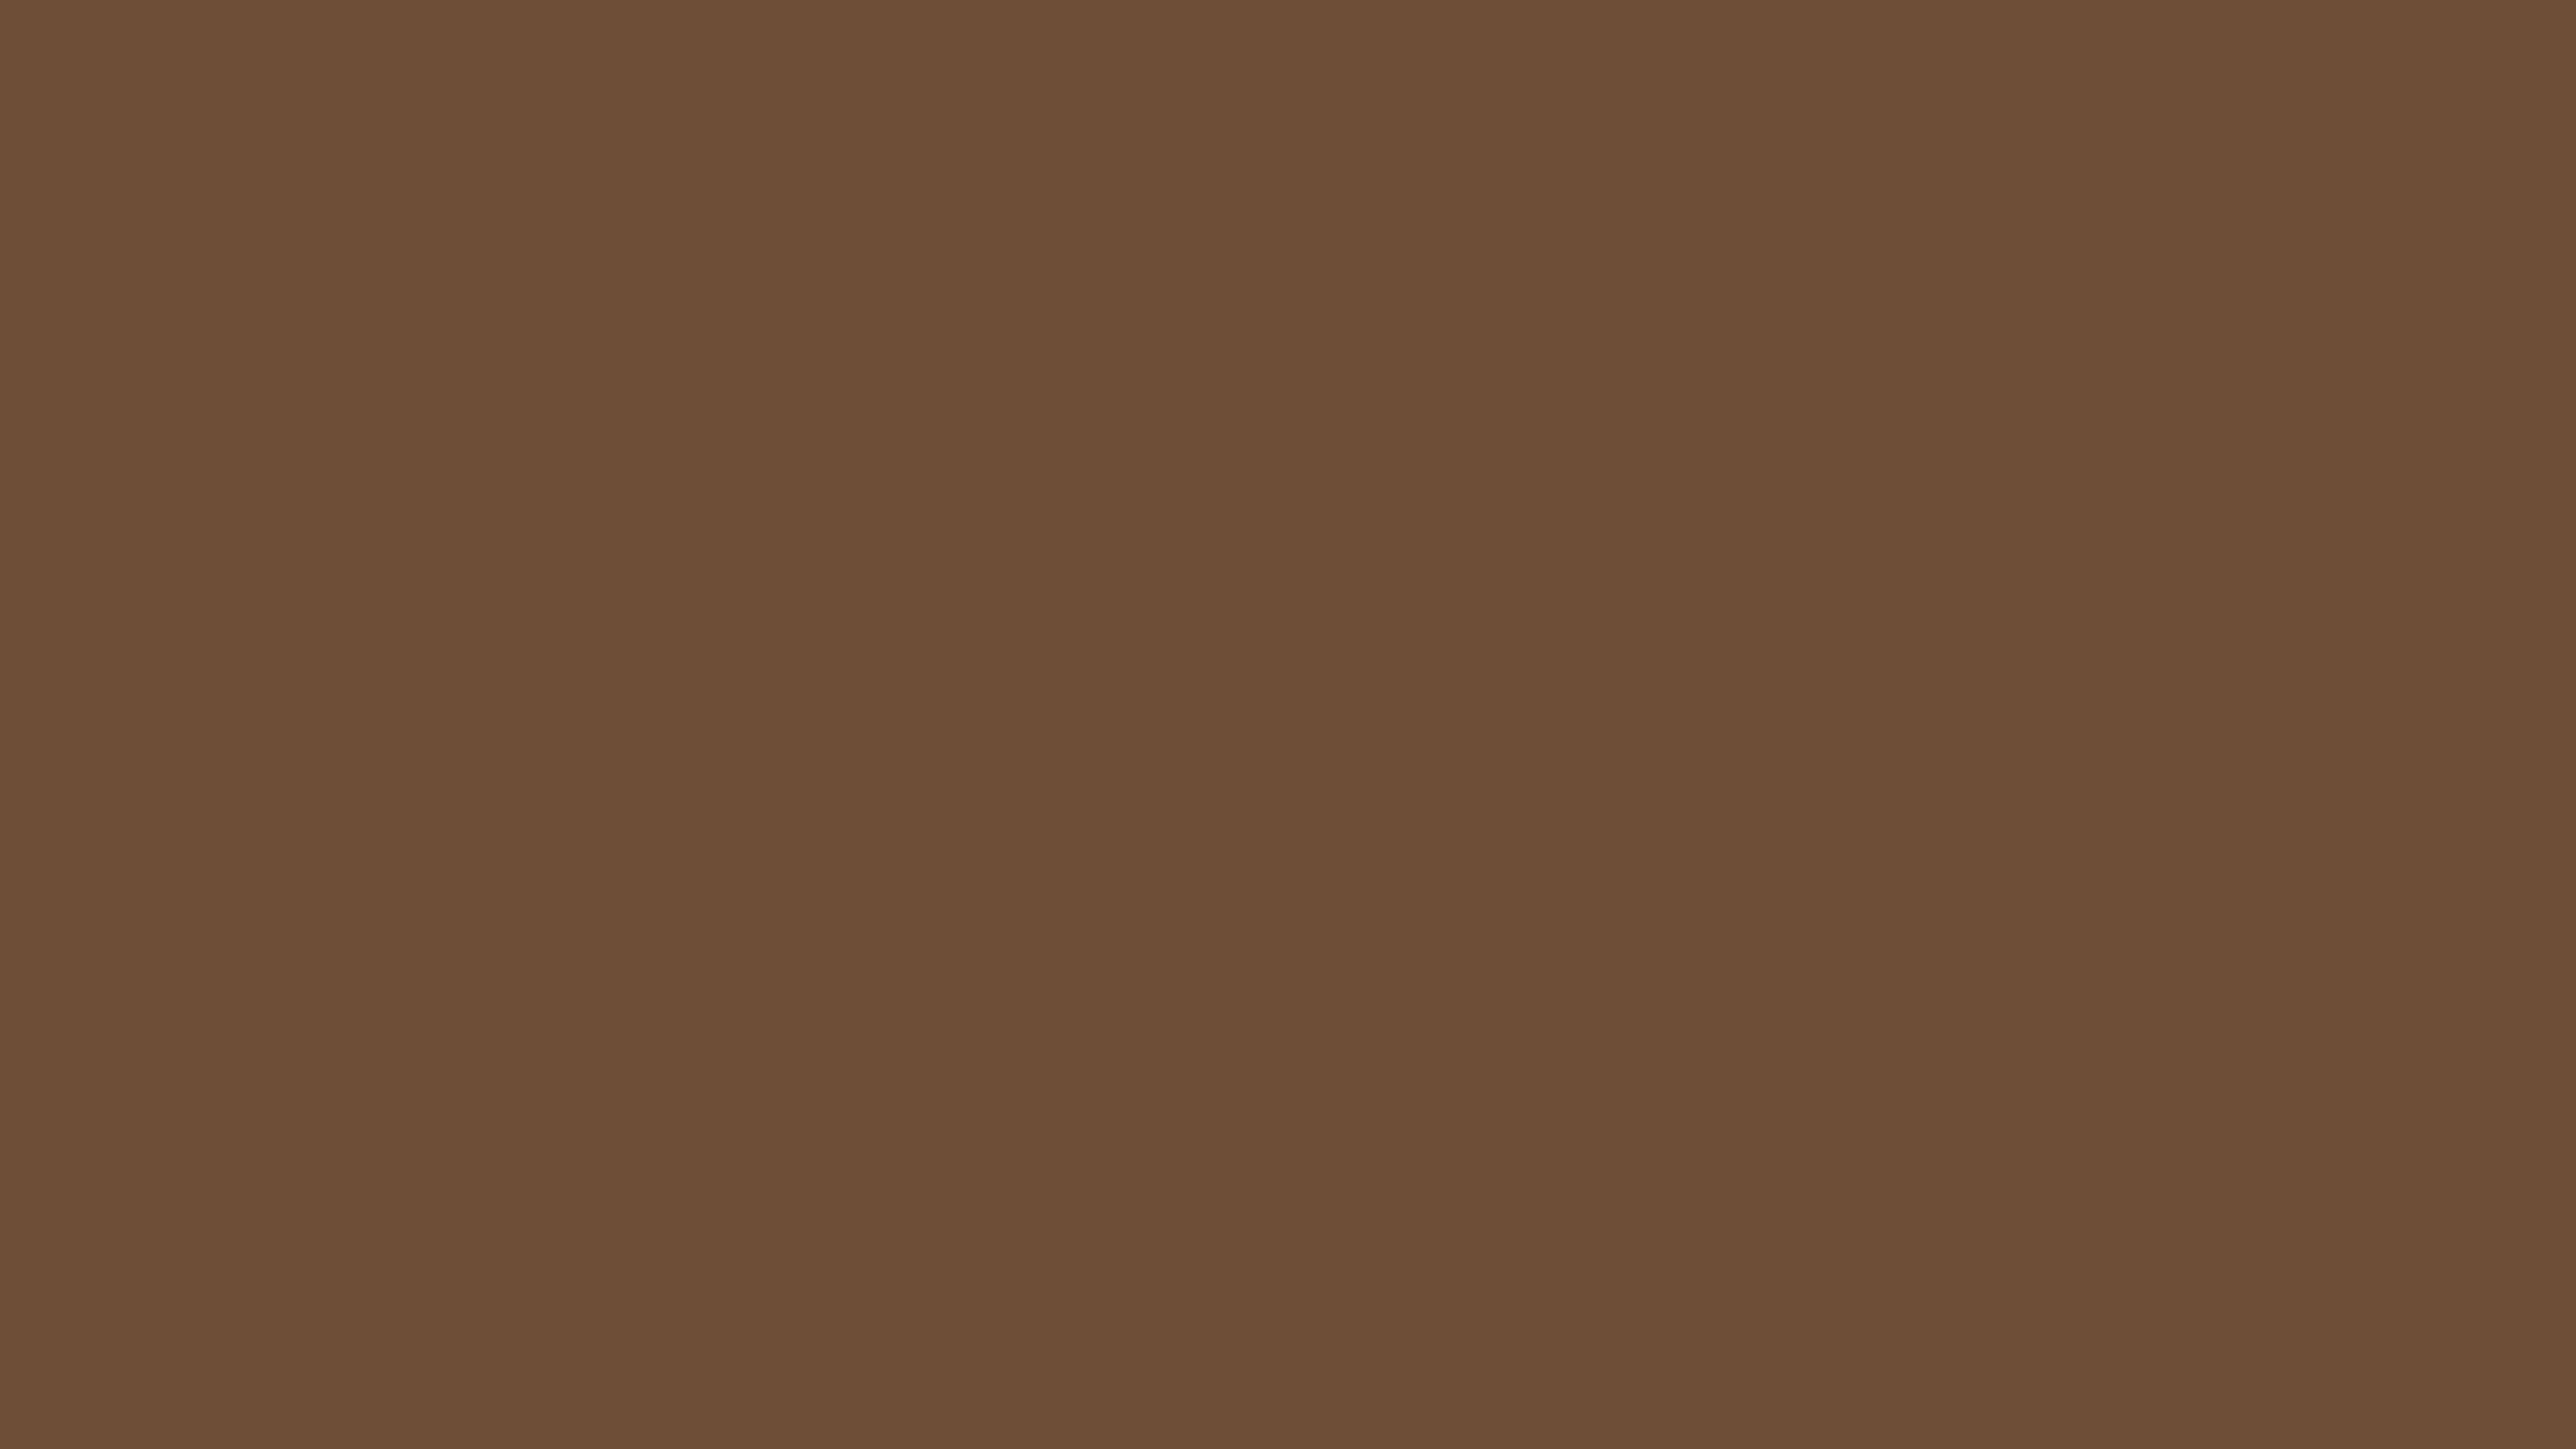 3840x2160 Coffee Solid Color Background